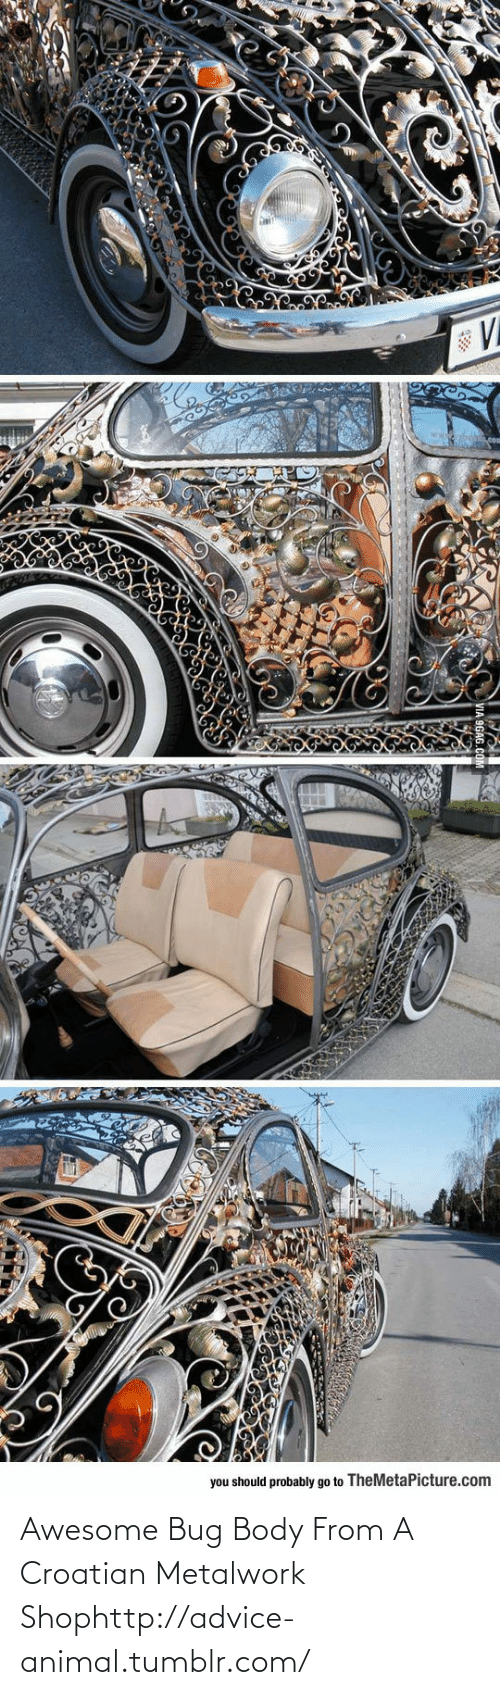 Croatian: you should probably go to TheMetaPicture.com Awesome Bug Body From A Croatian Metalwork Shophttp://advice-animal.tumblr.com/